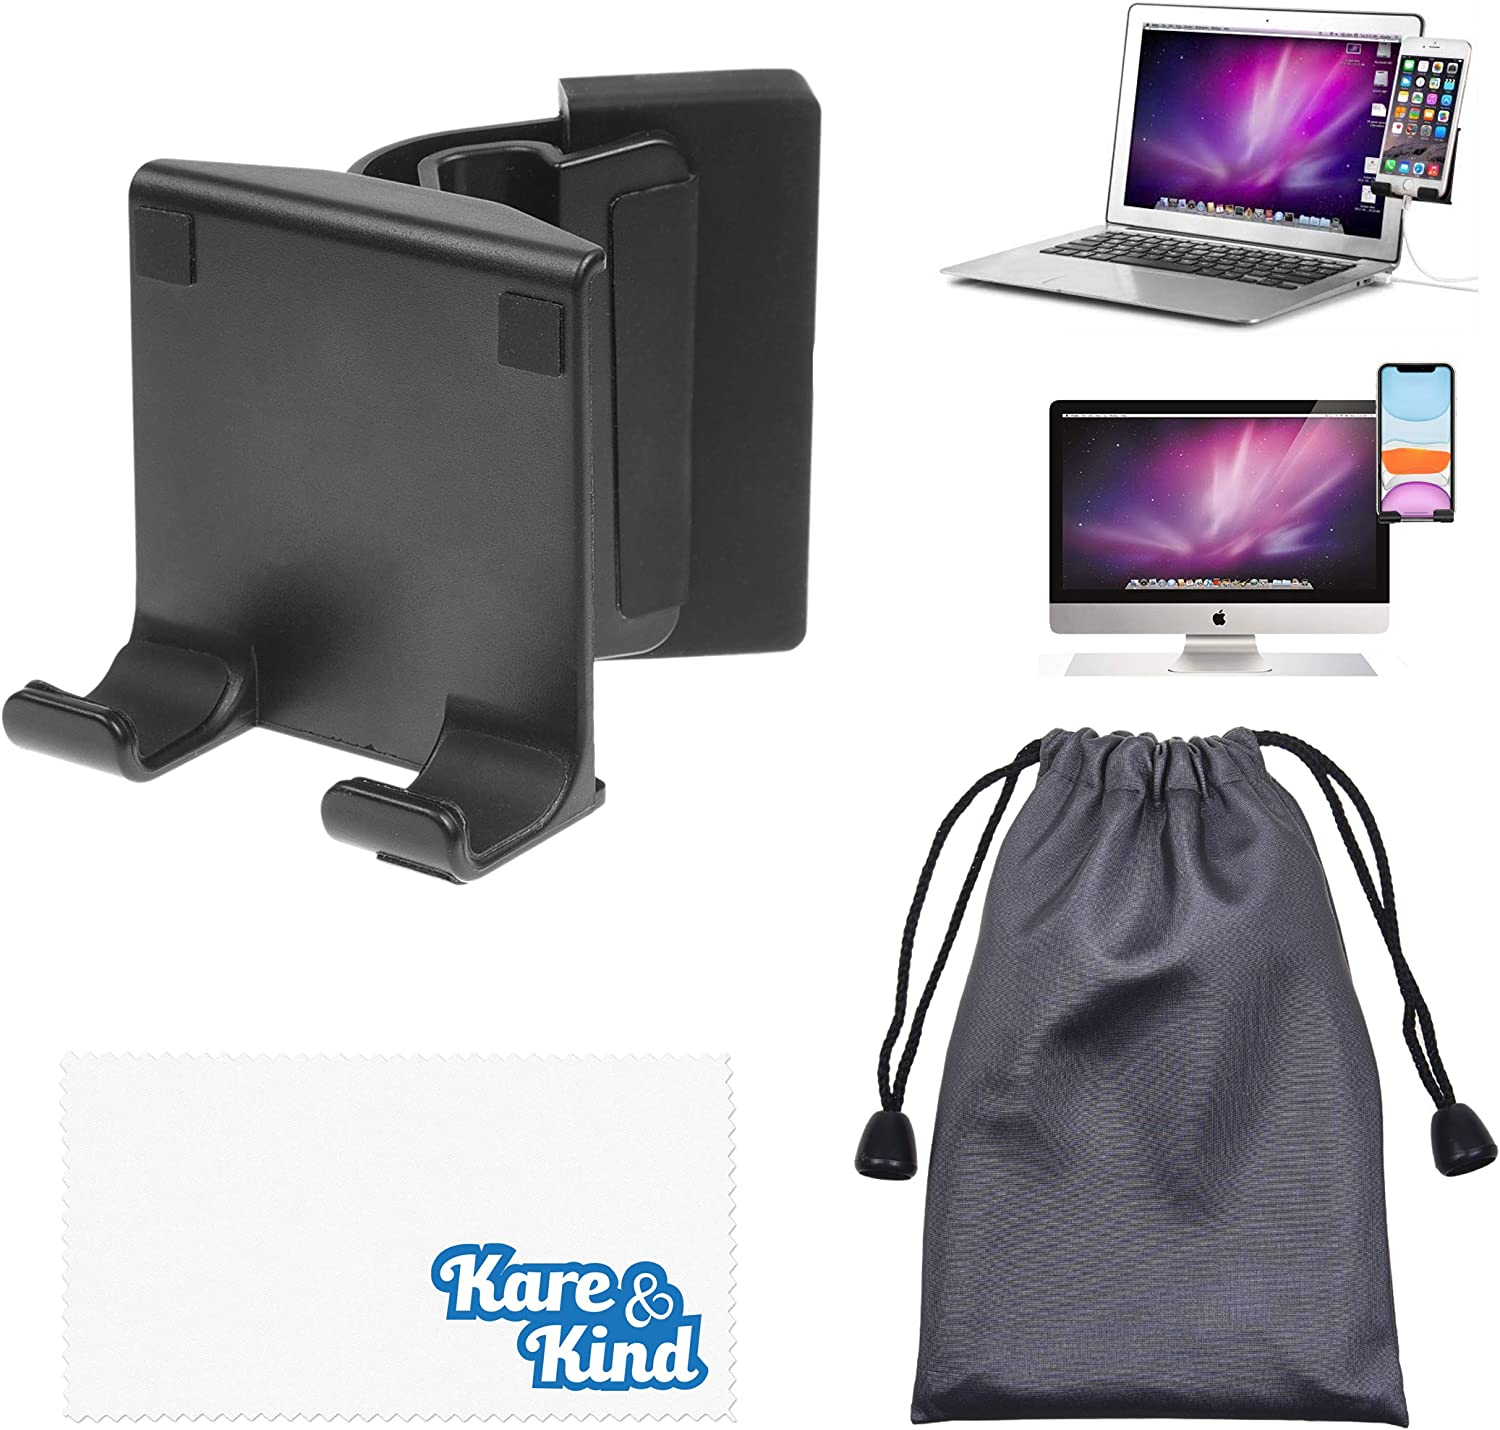 Kare & Kind Smartphone Clip-On Holder - Attaches to Monitor and Laptops - Adjustable Mount for Slim or Thick Monitors (up to 25mm) - with A Universal Phone Dock/Stand